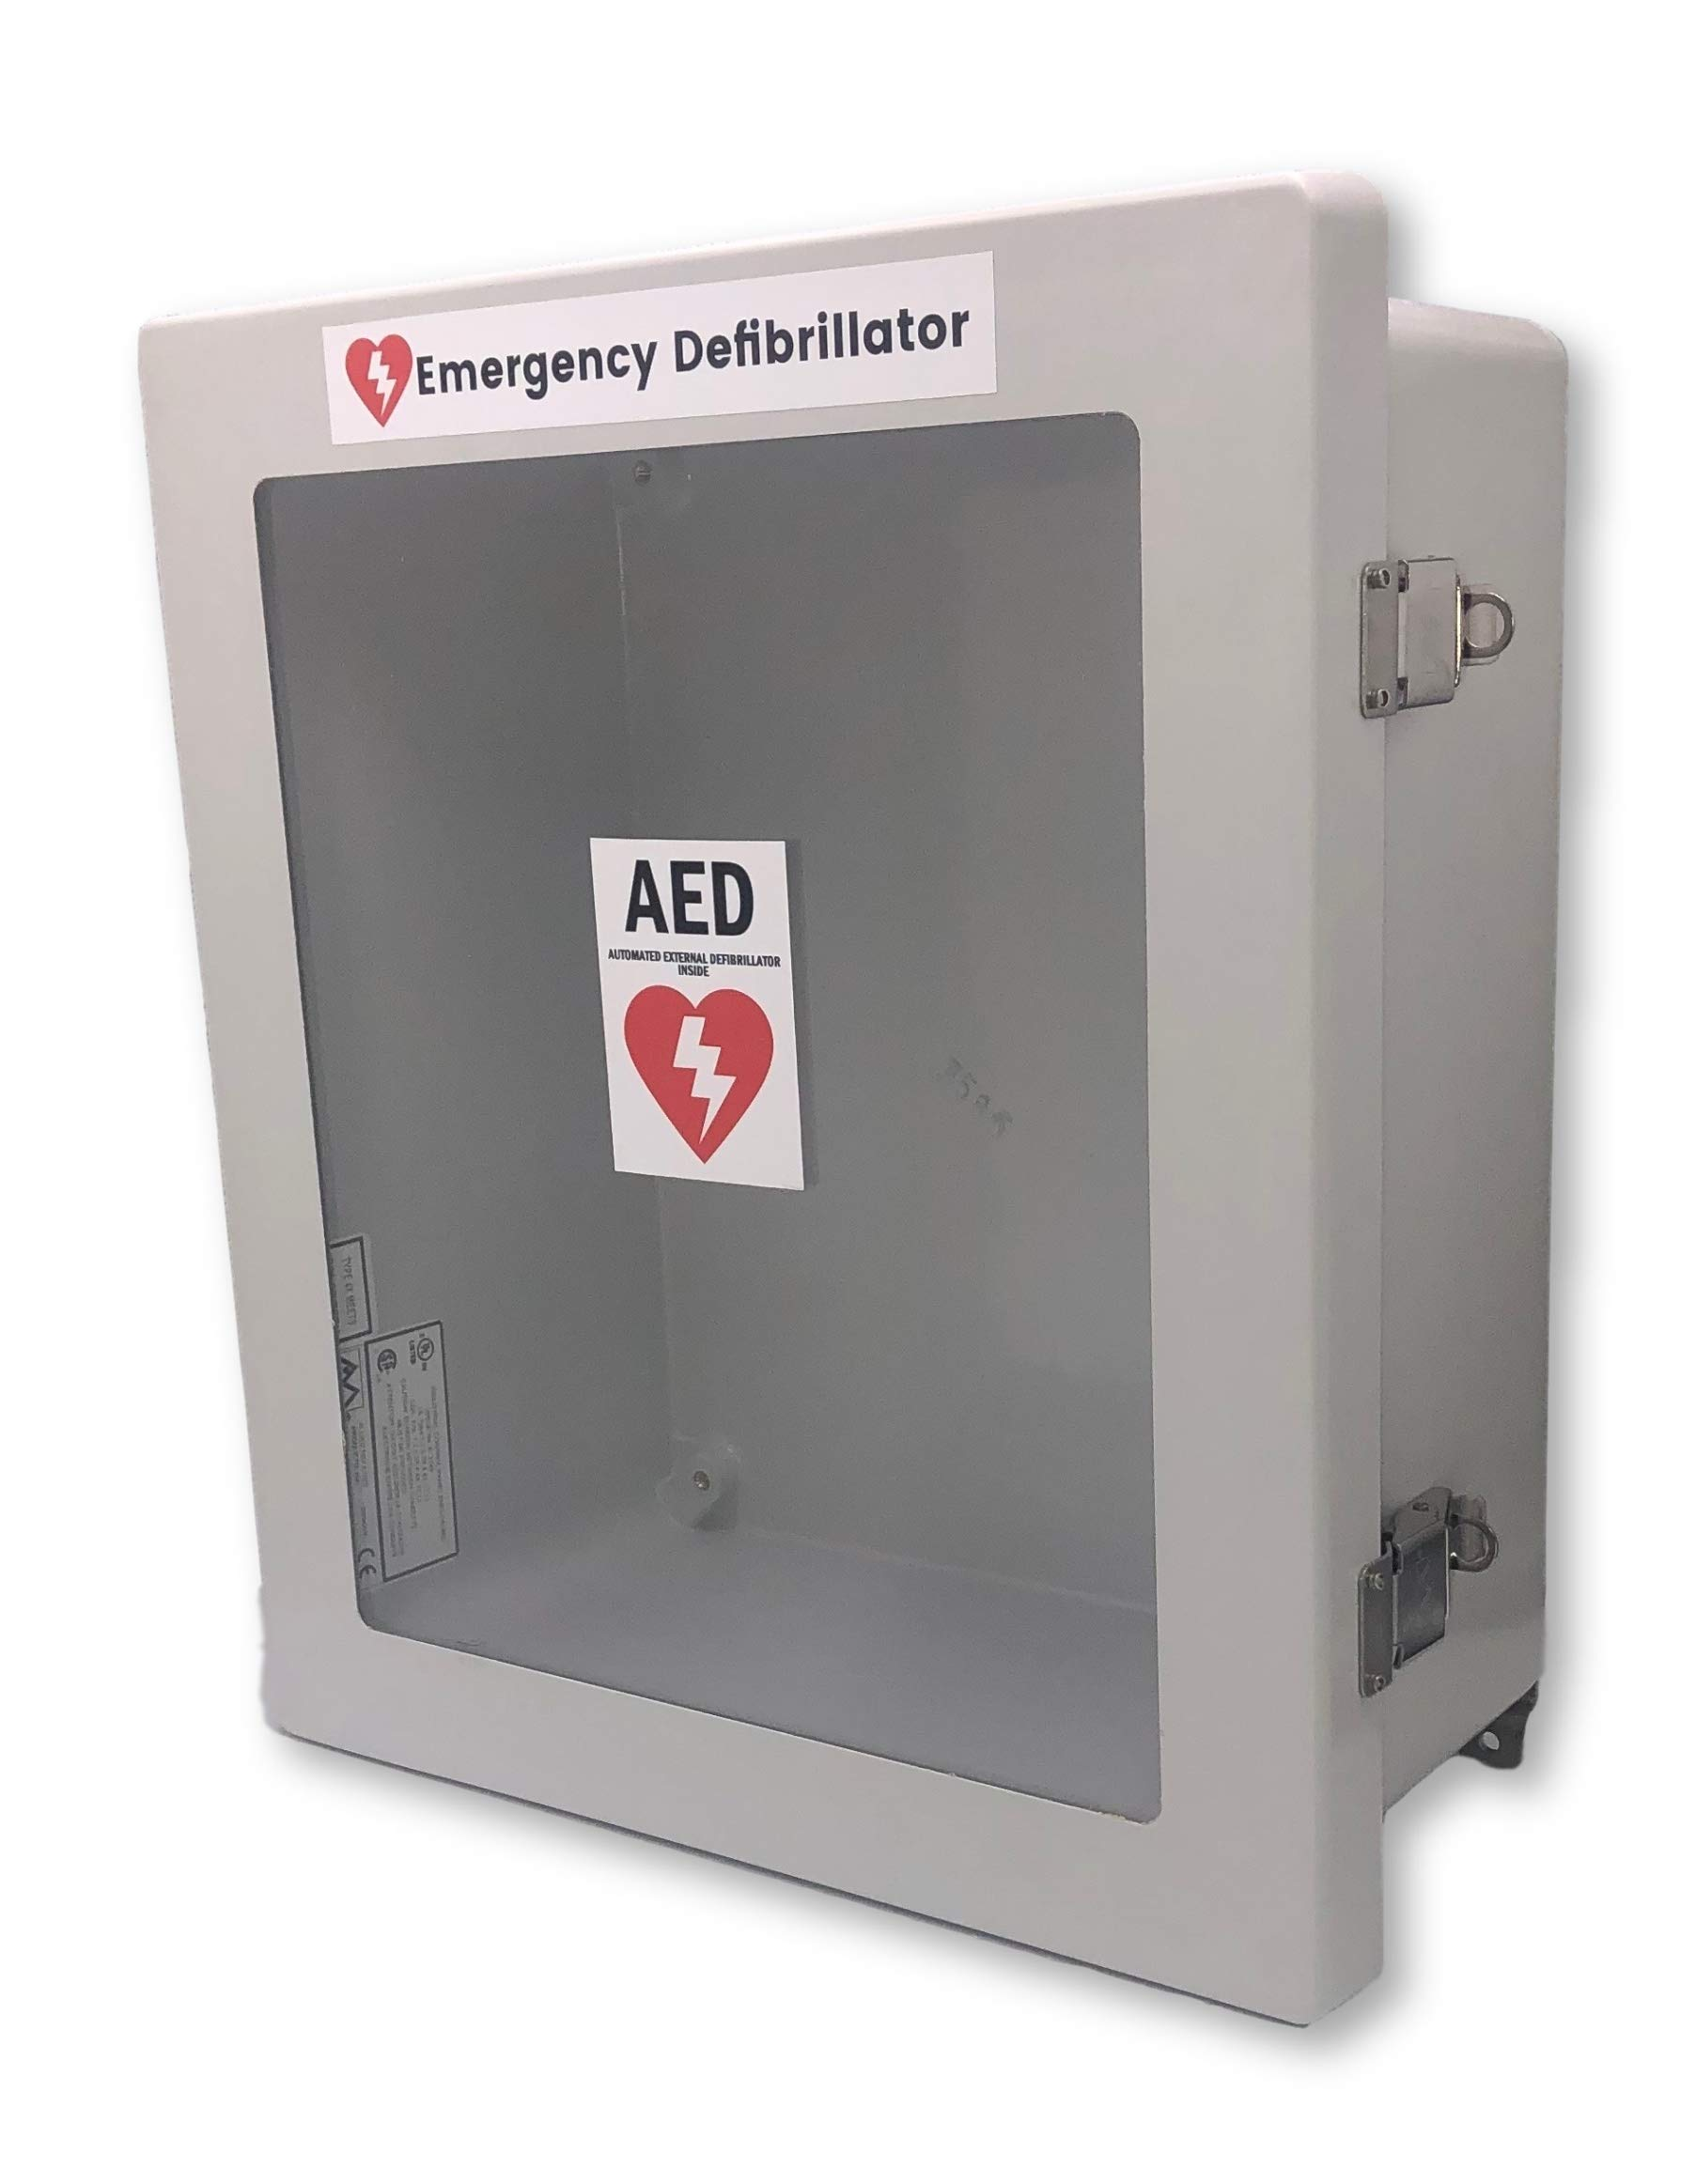 Defibrillator AED Cabinet Enclosure Box with Window - Weather Resistant Waterproof / LARGER ENCLOSURE FITS ALL MODELS (Inside Dimensions of 14'' Tall x 12'' Wide x 6'' Depth) by AA Communications